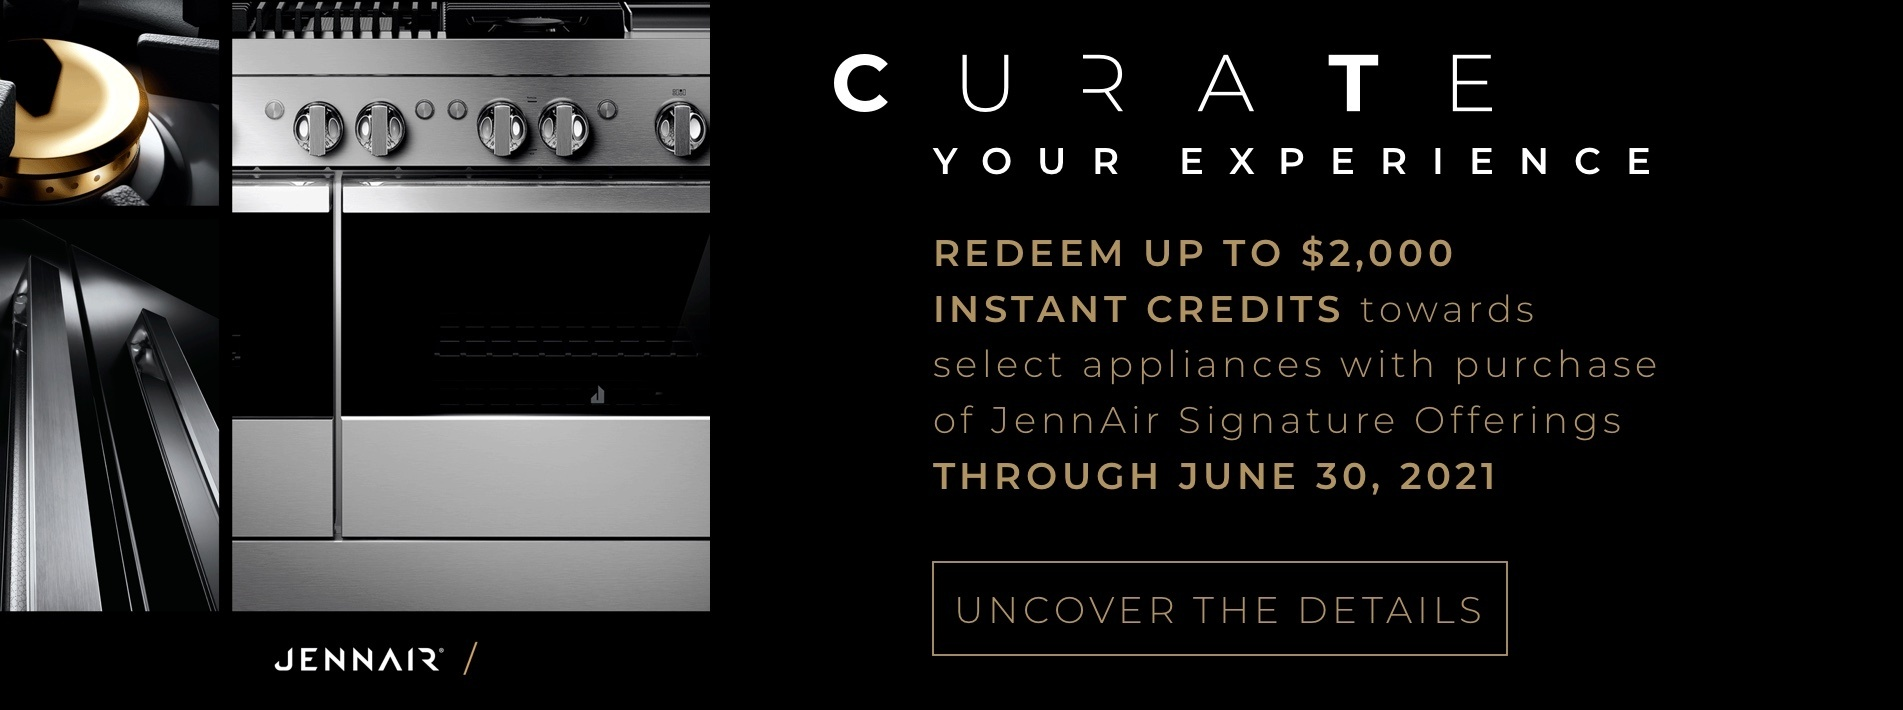 Jenn-Air: Curate Your Experience